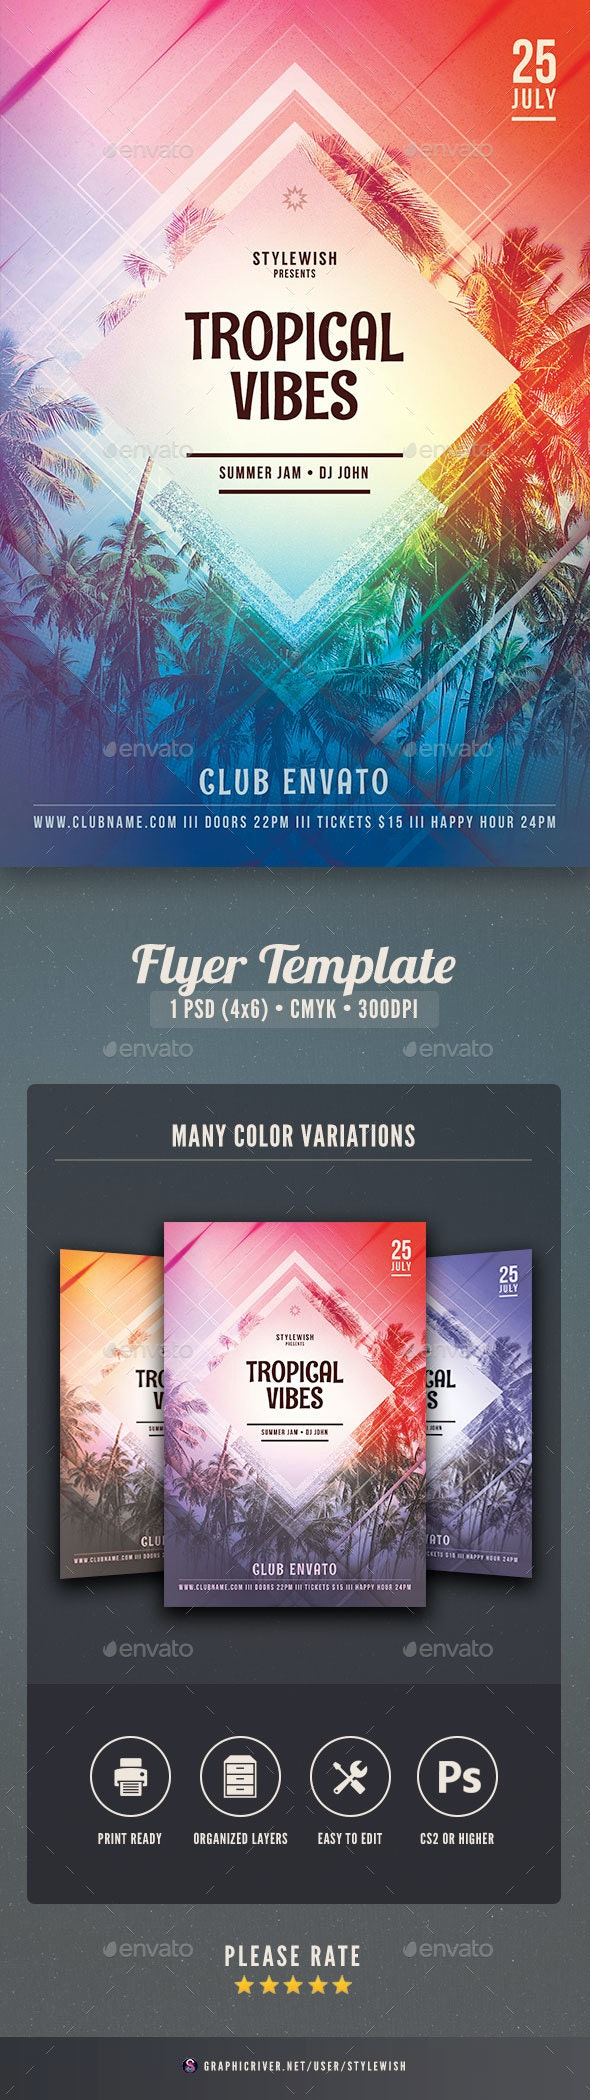 Tropical Vibes Flyer - Clubs & Parties Events